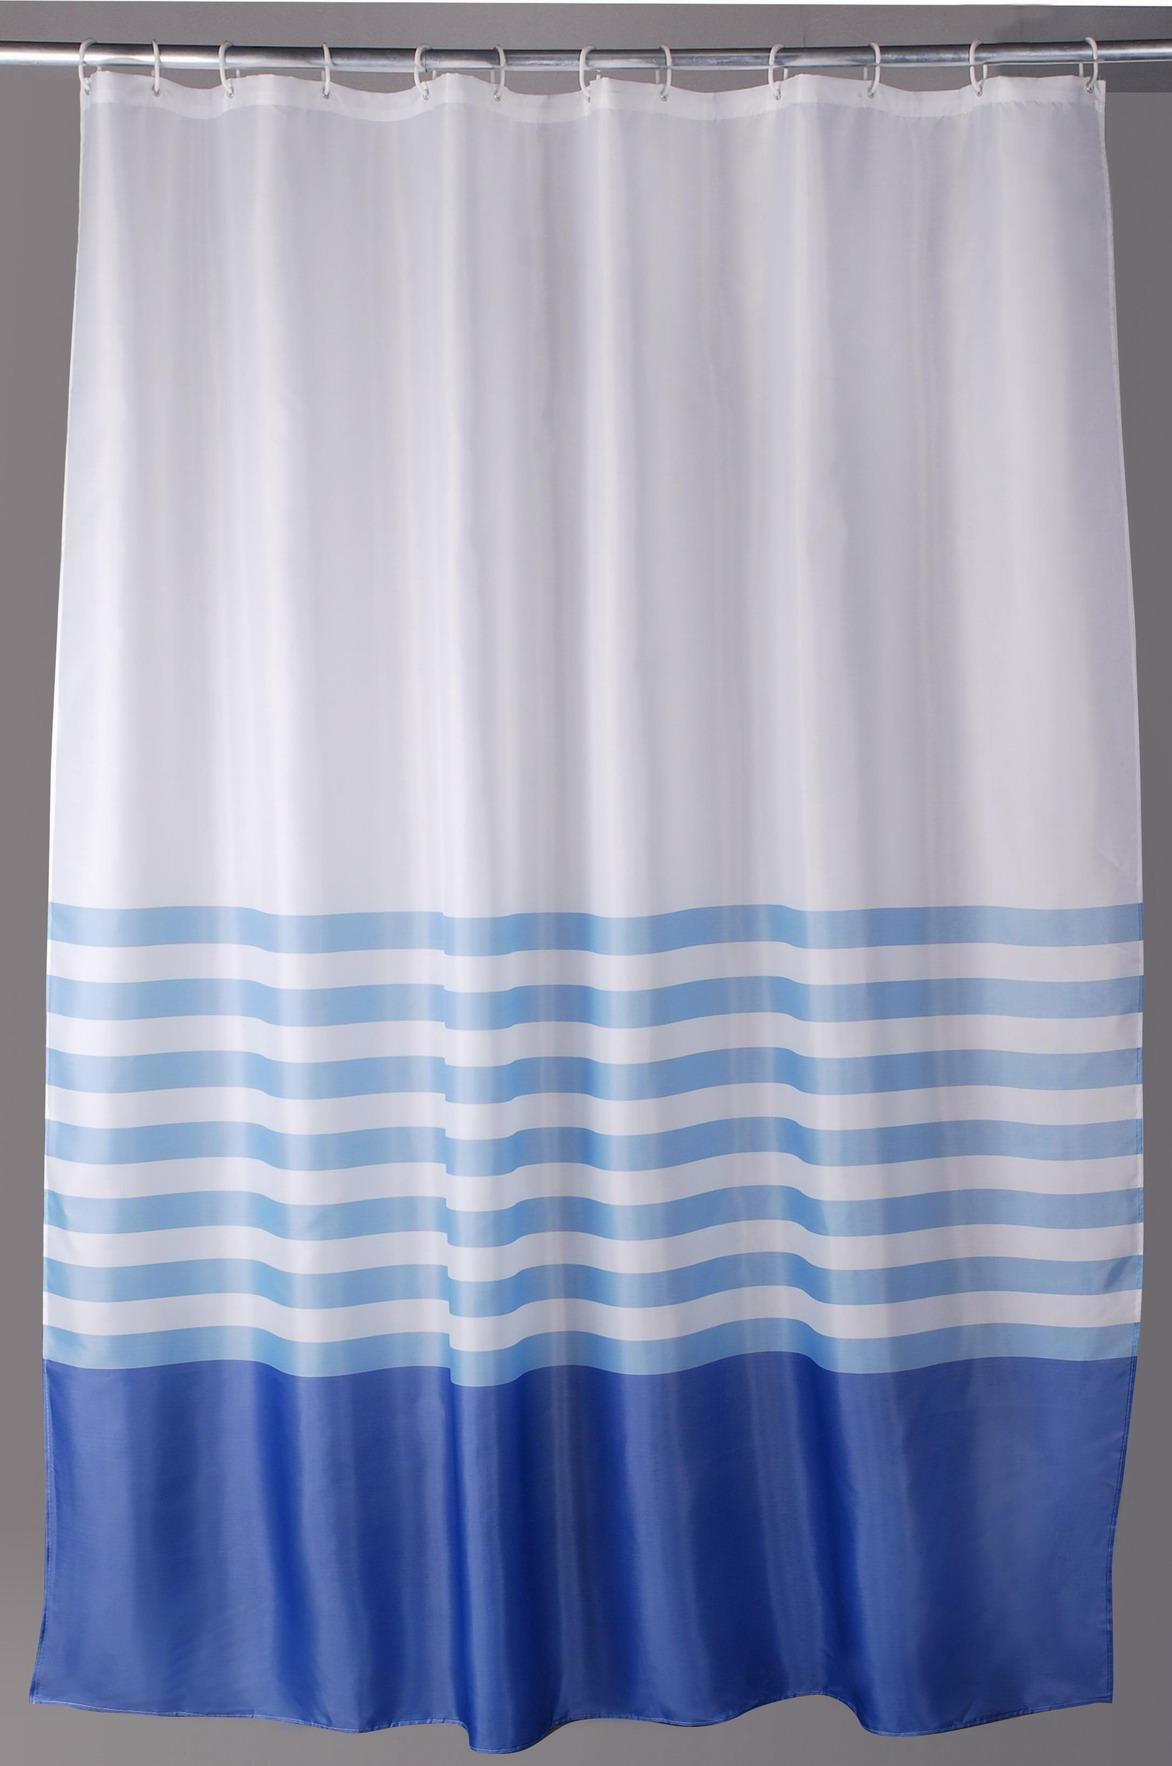 China pvc shower curtain photos pictures made in - Pvc shower curtain ...